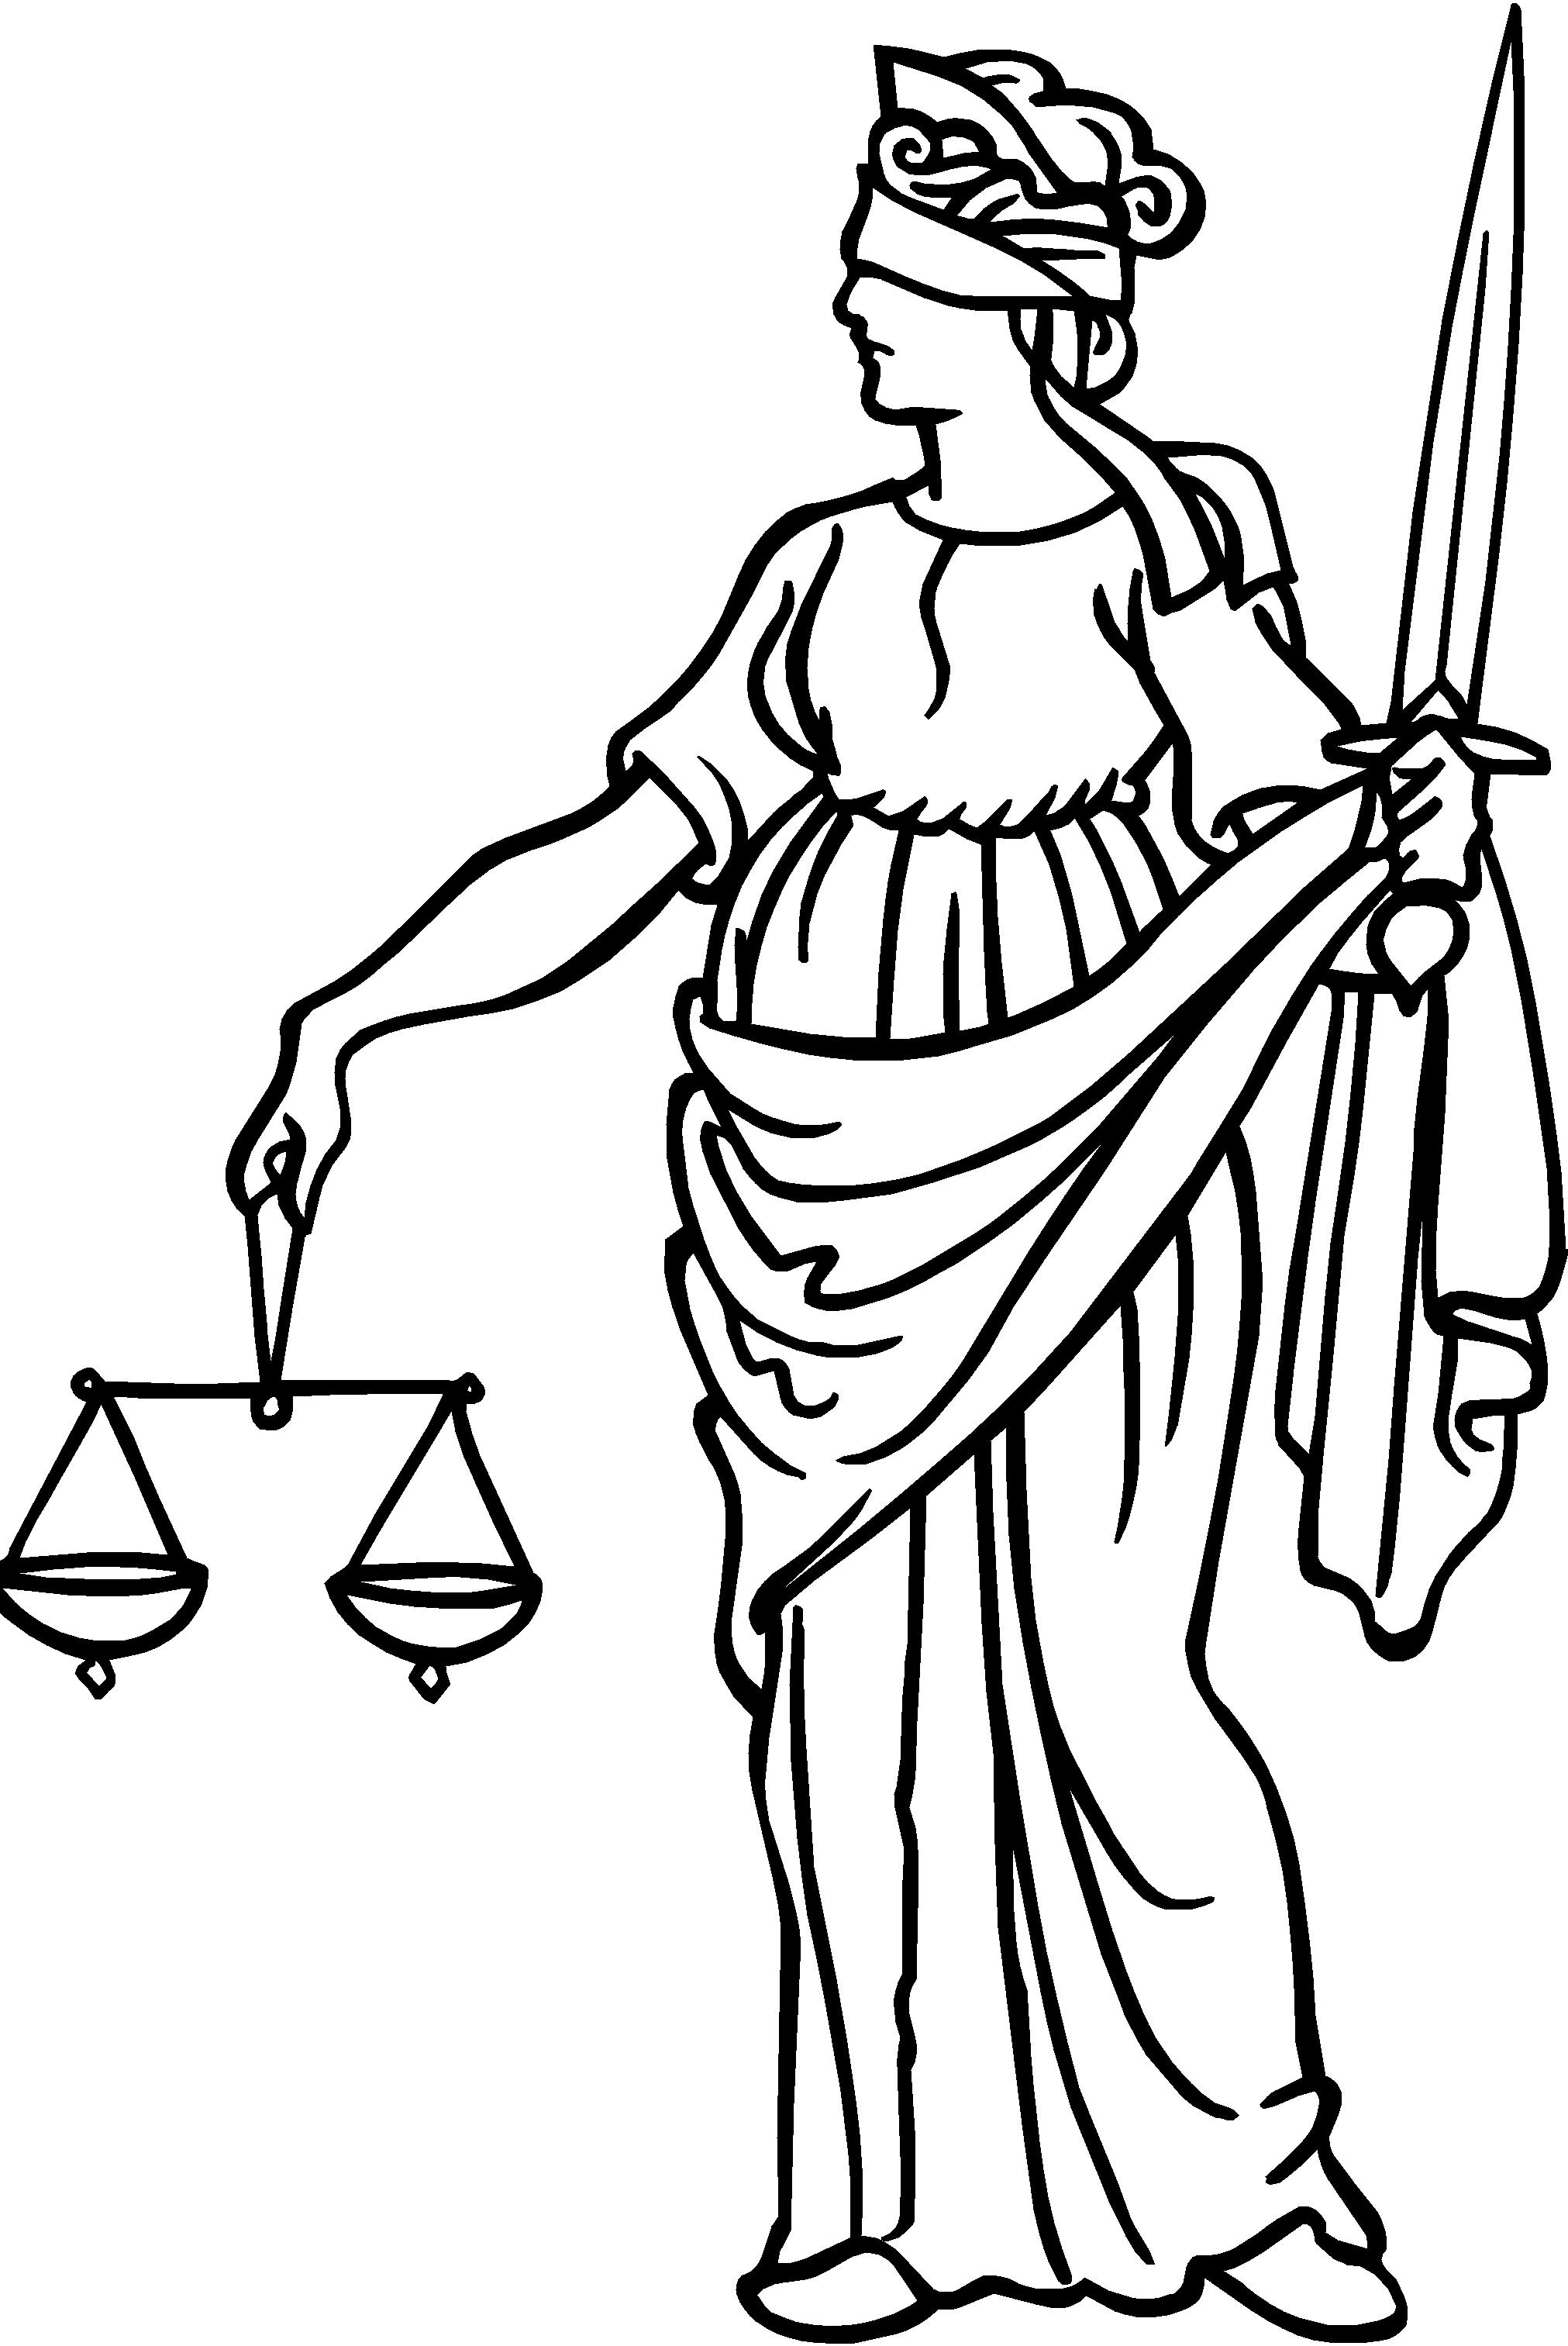 Clip Art Scales Of Justice Clip Art scales of justice art clipart best lady beautiful scales